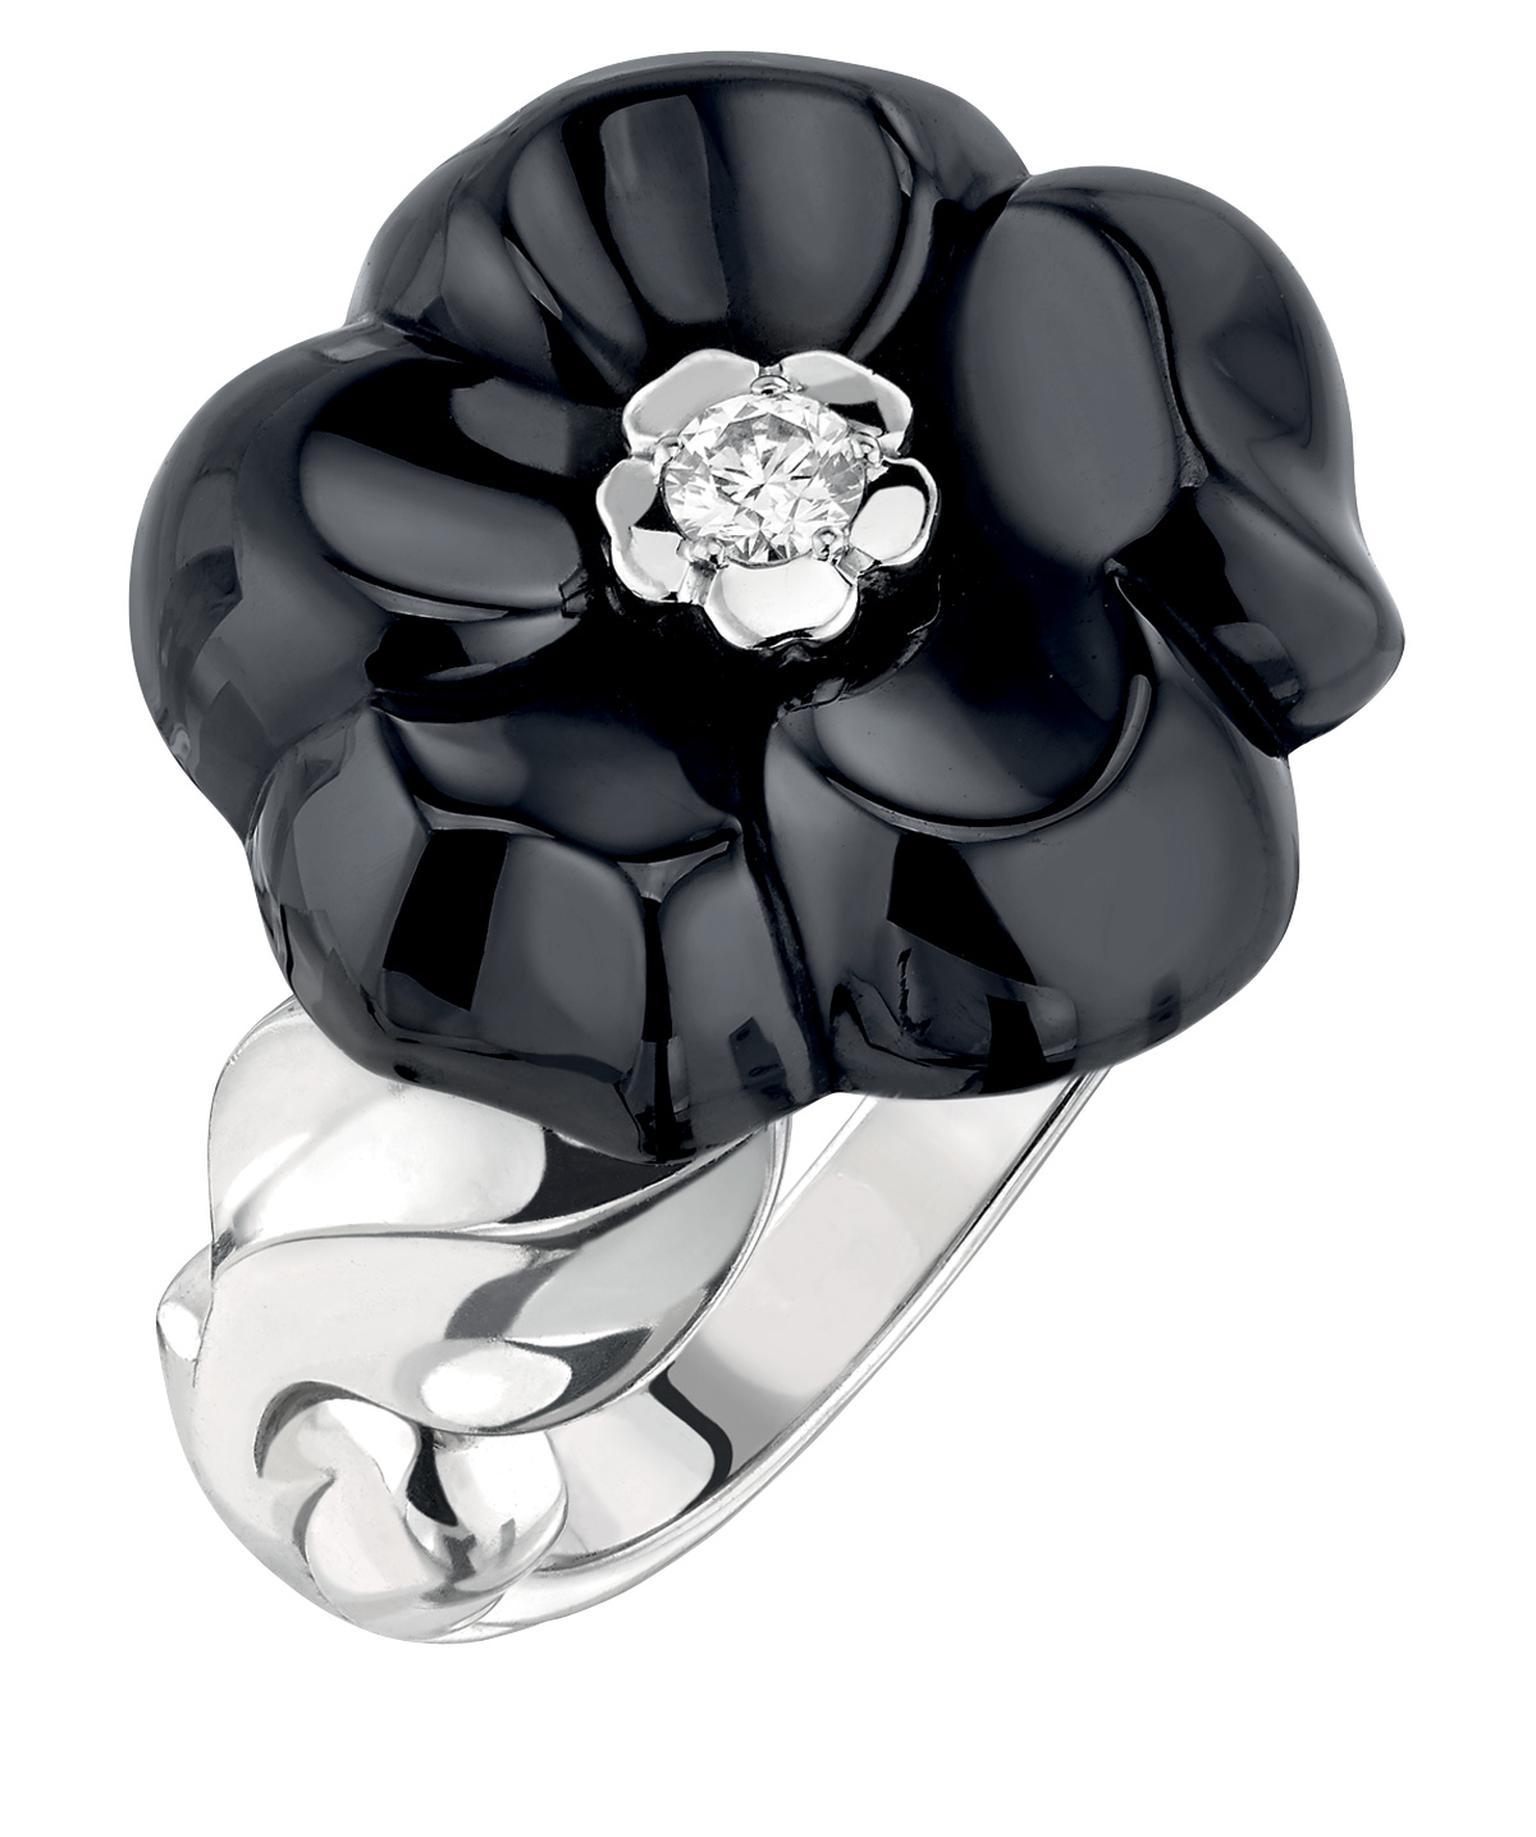 Chanel Camélia Galbé small black ceramic ring_20140226_Zoom